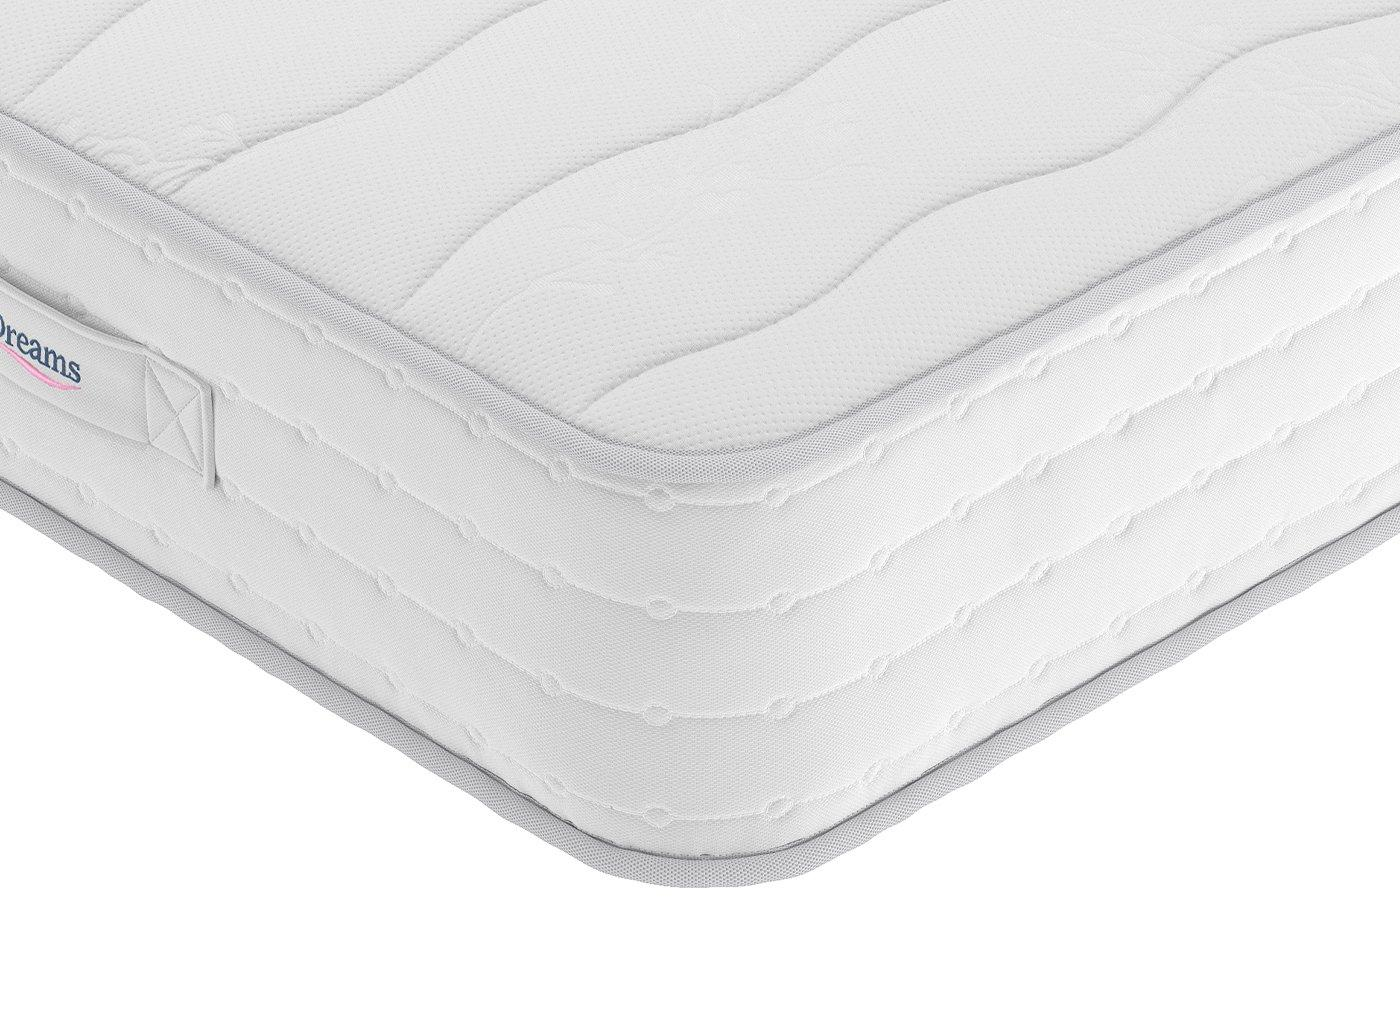 Annison Pocket Sprung Mattress - Medium 5'0 King